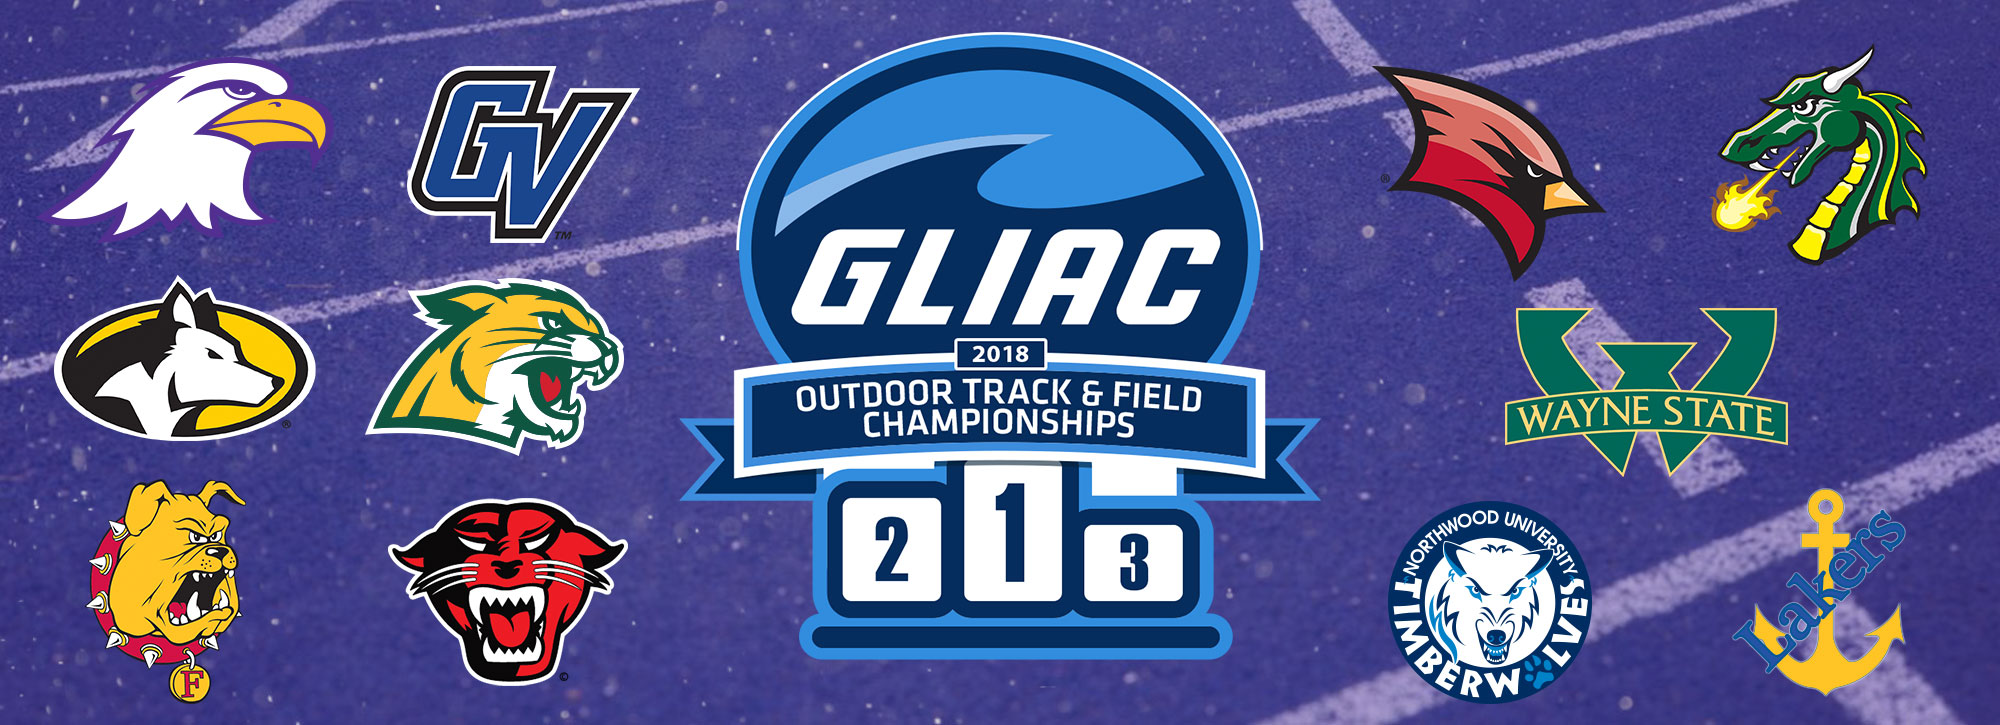 2018 GLIAC Outdoor Track & Field Championships Begin Wednesday in Ashland